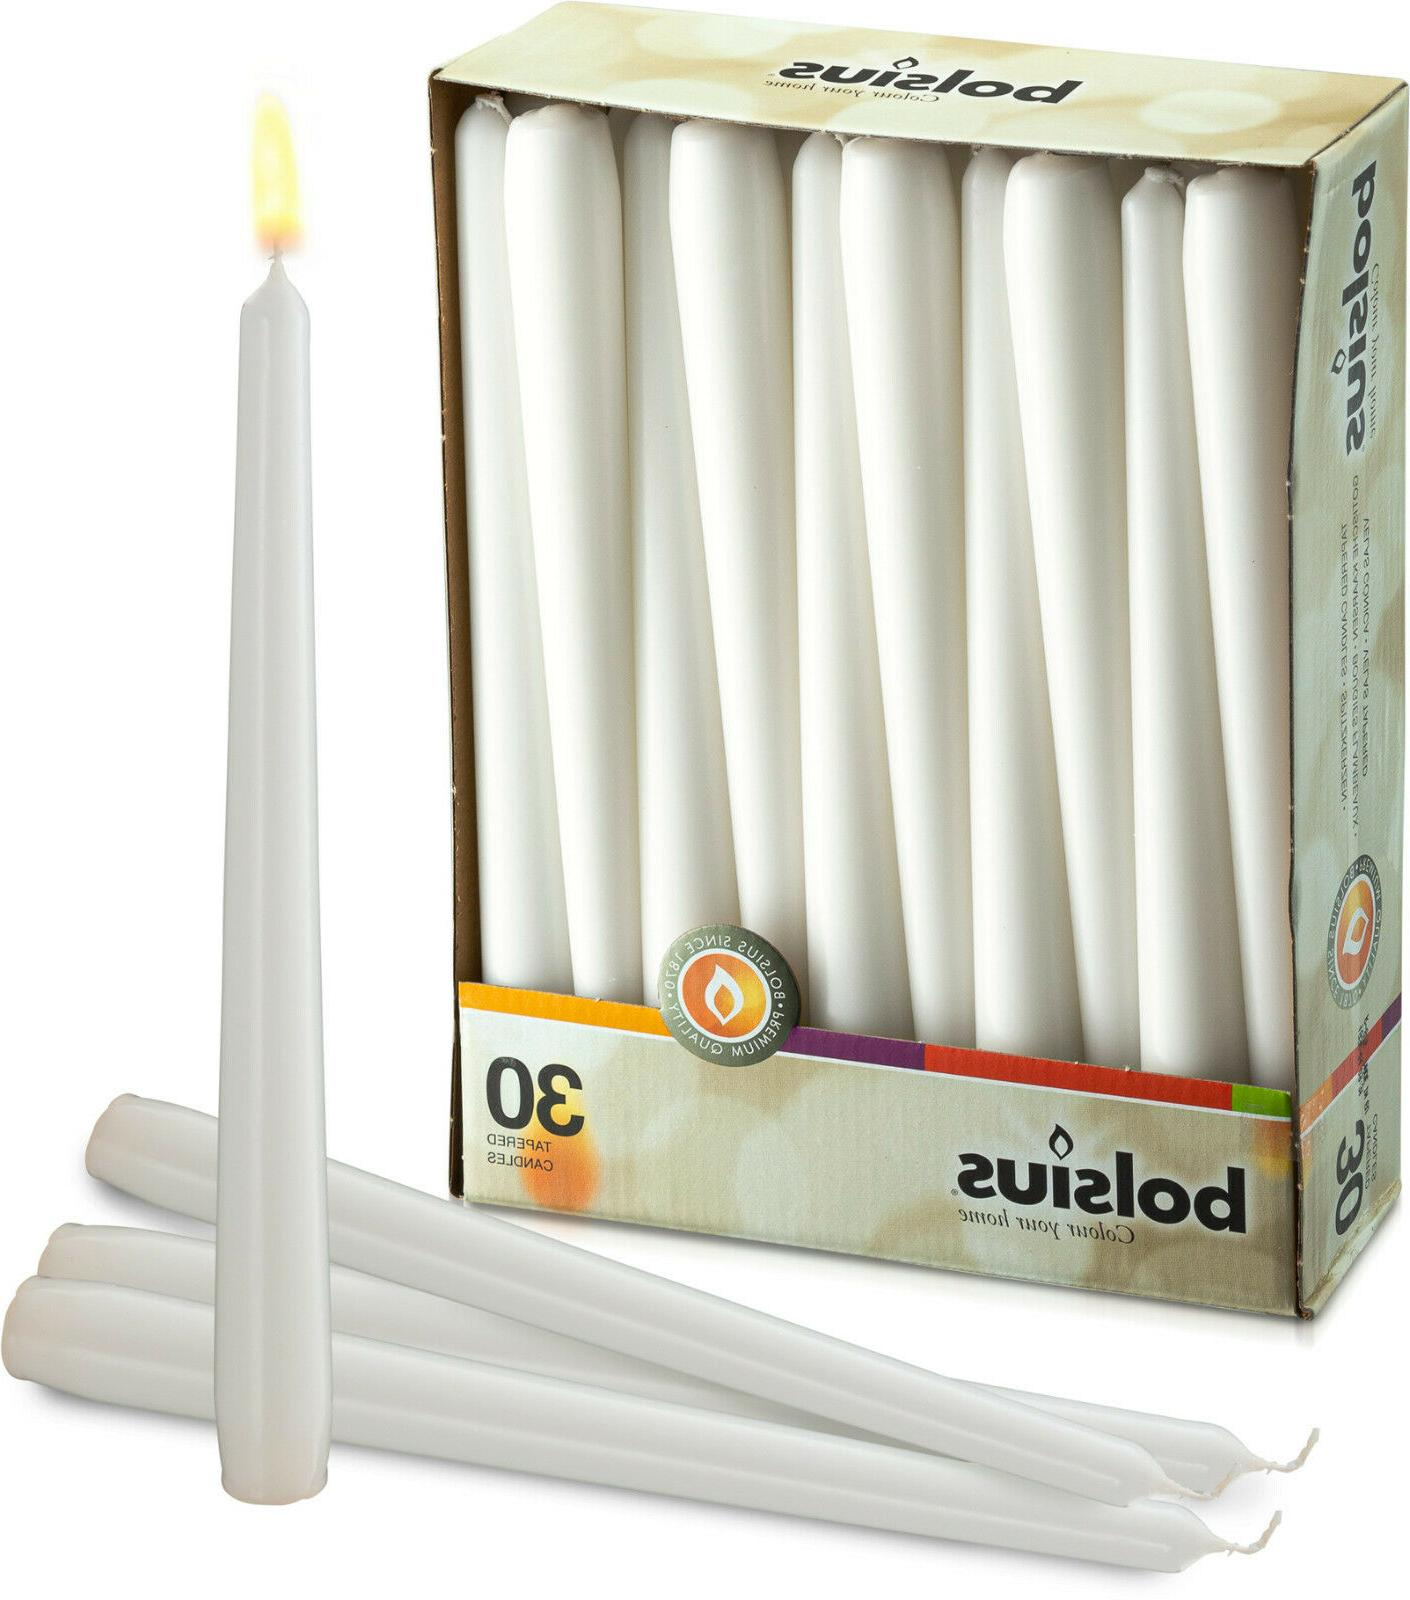 white taper candles 30 in a box